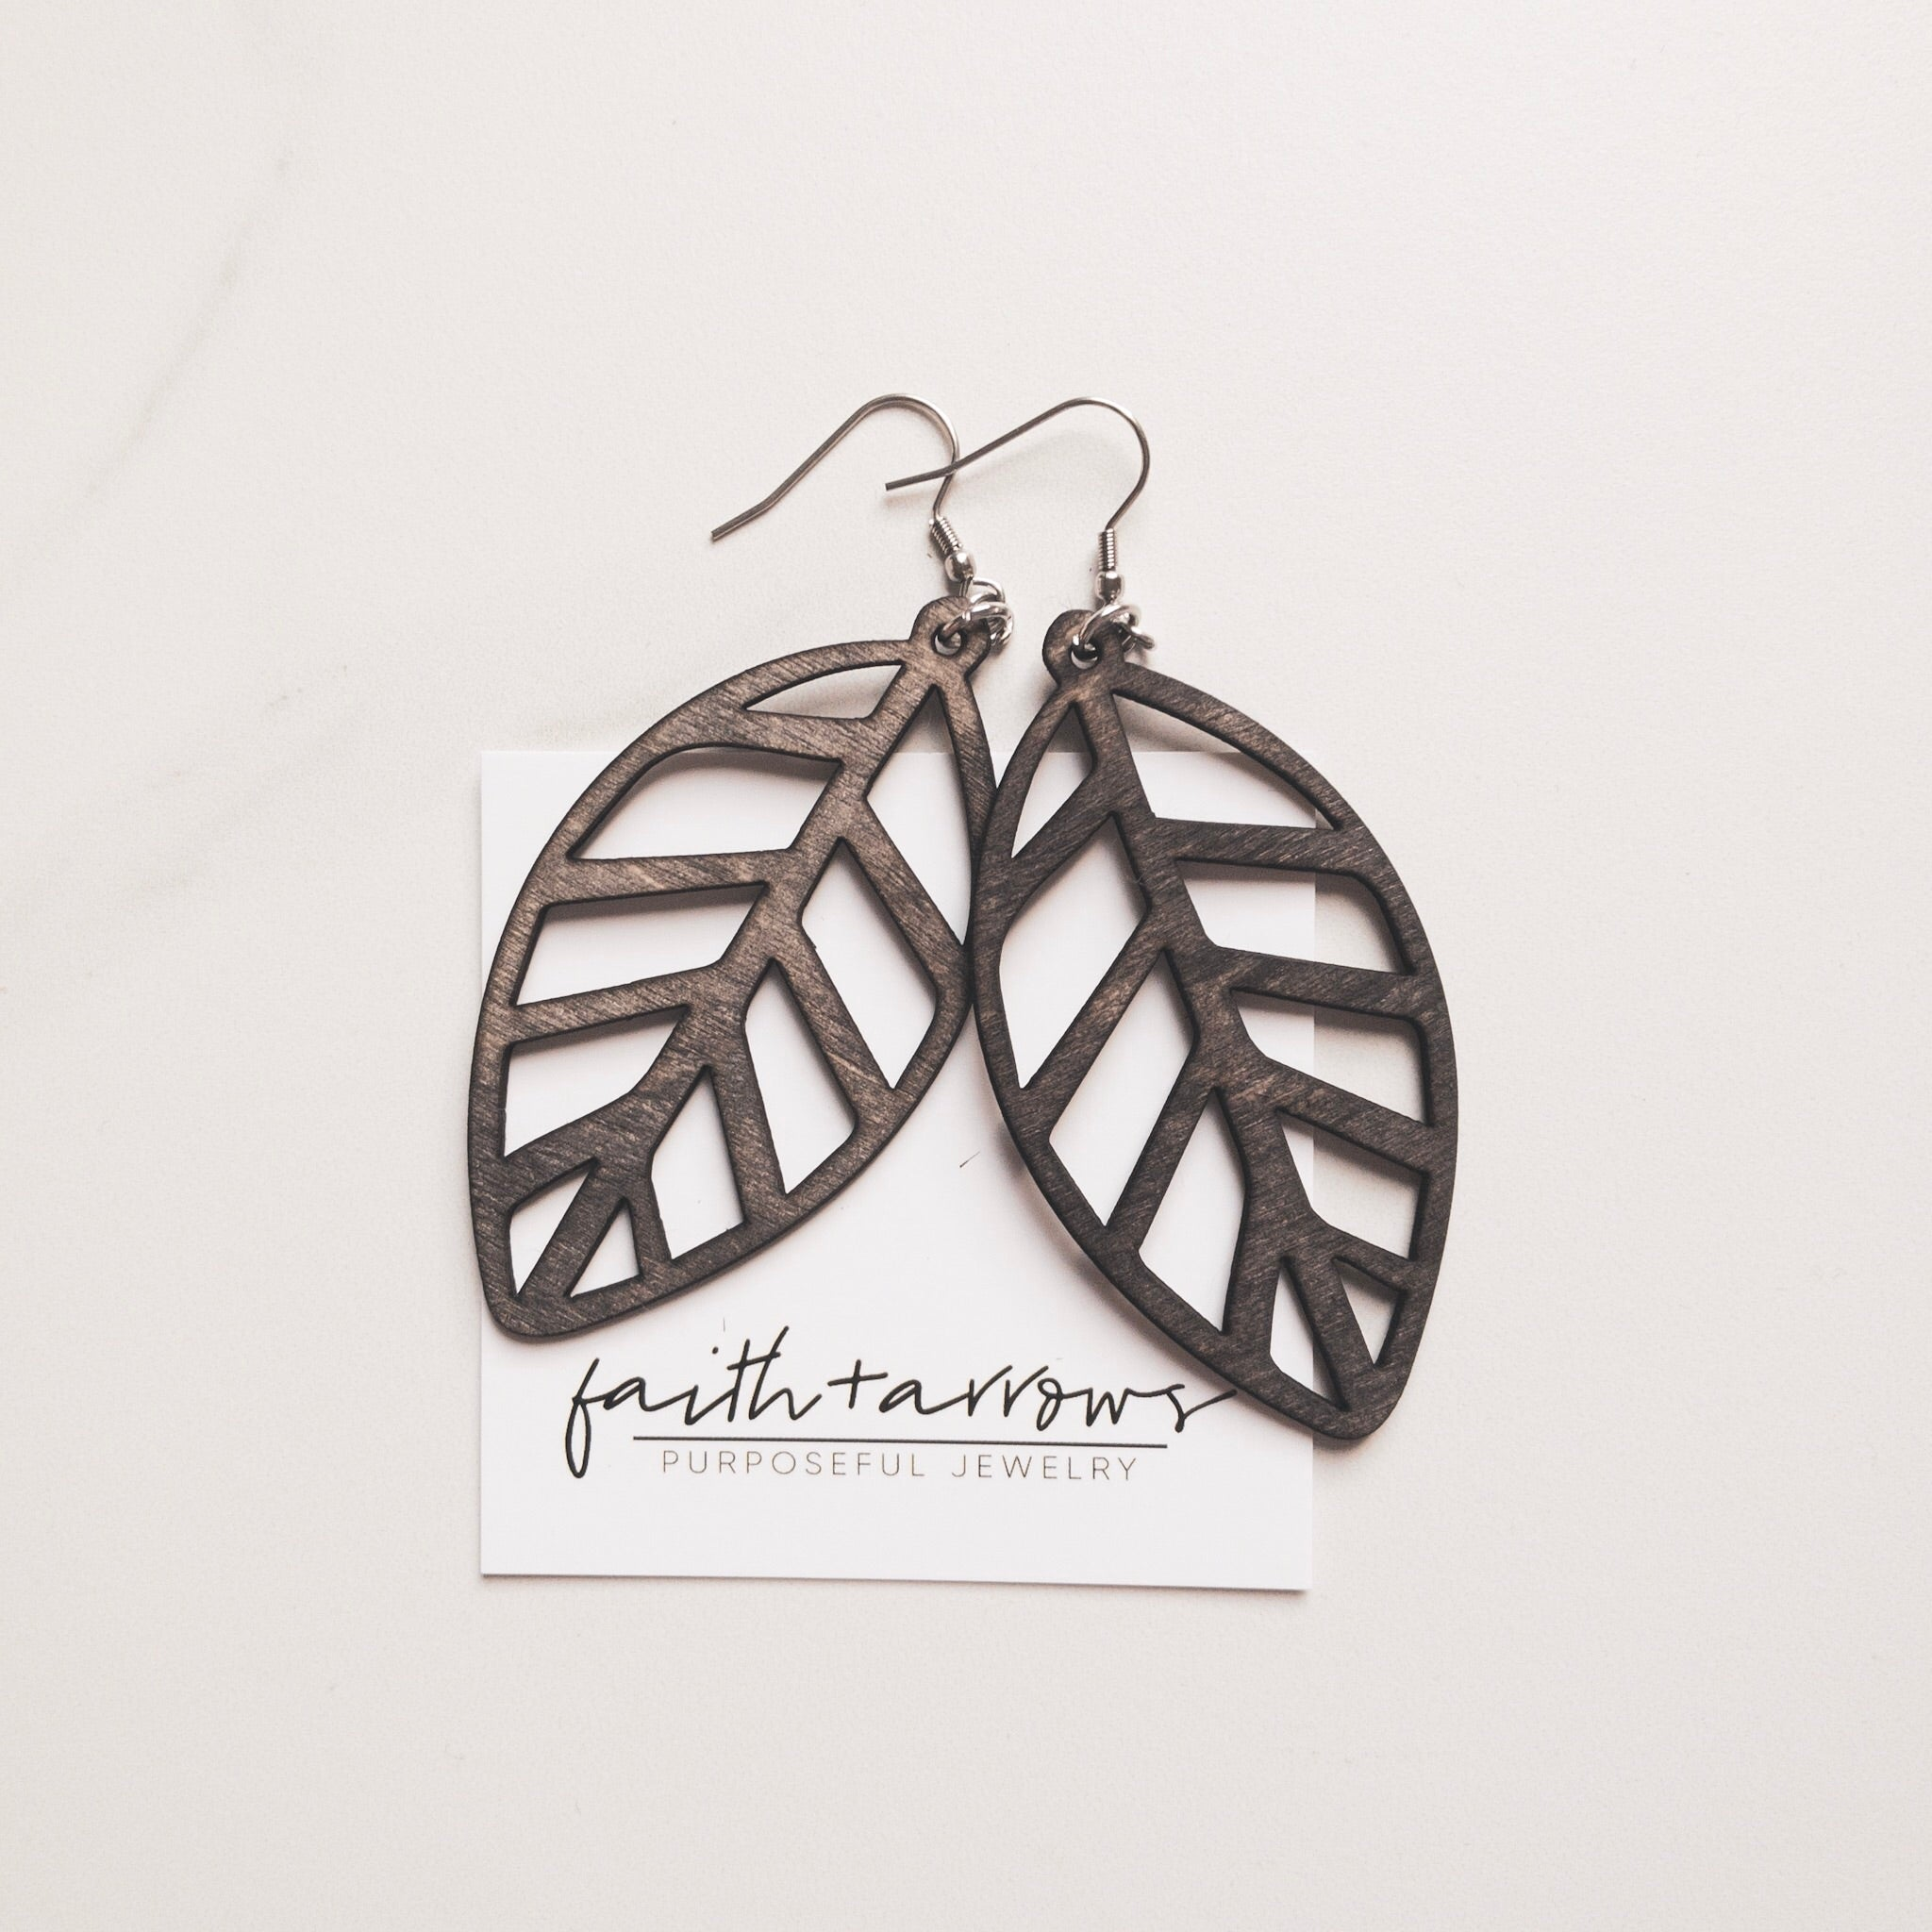 Laser cut wooden leaf earrings